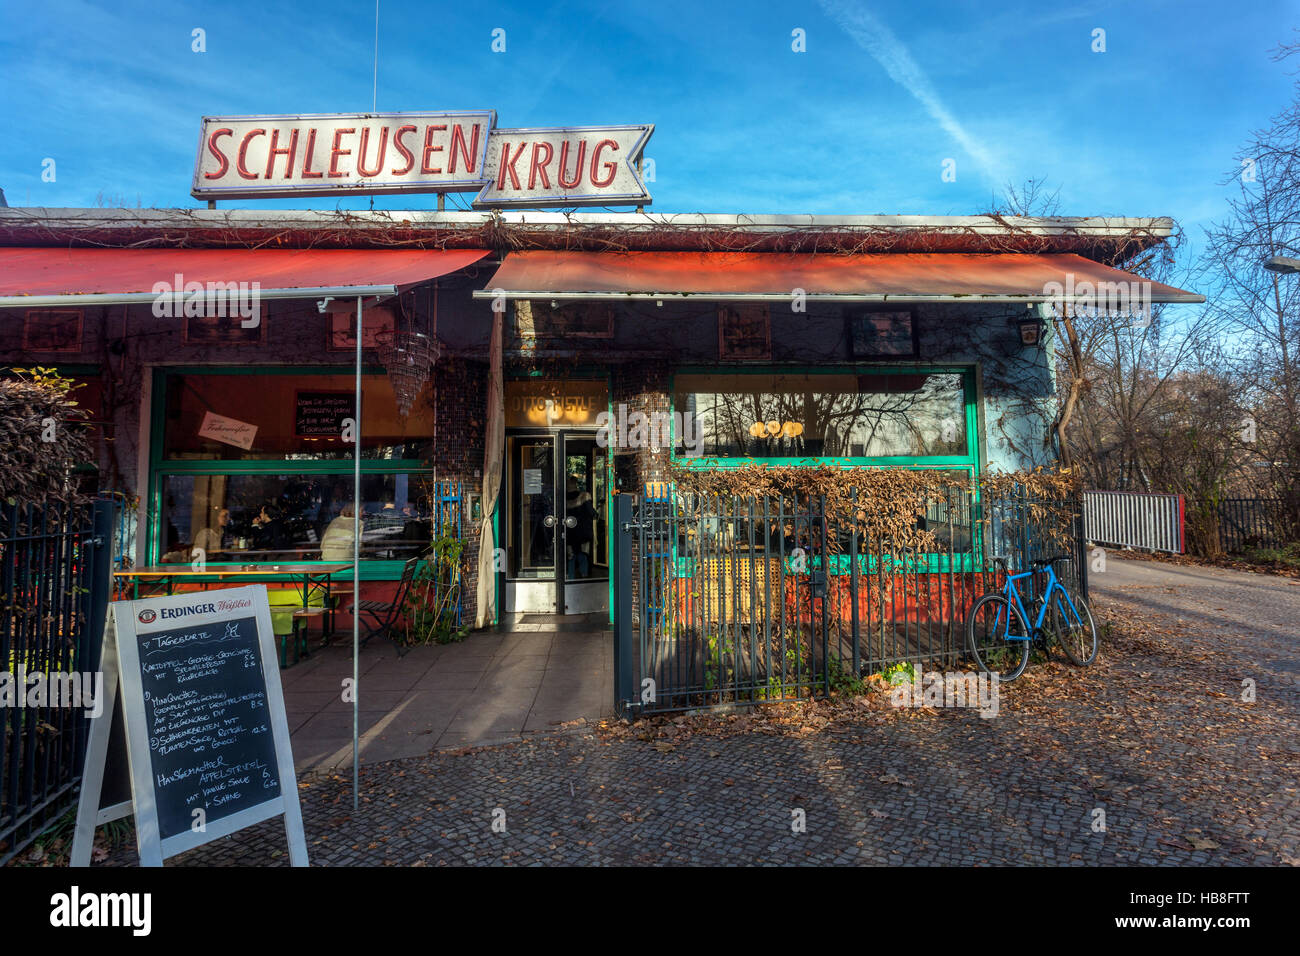 restaurant schleusenkrug situated near the zoo in berlin germany stock photo 127421864 alamy. Black Bedroom Furniture Sets. Home Design Ideas